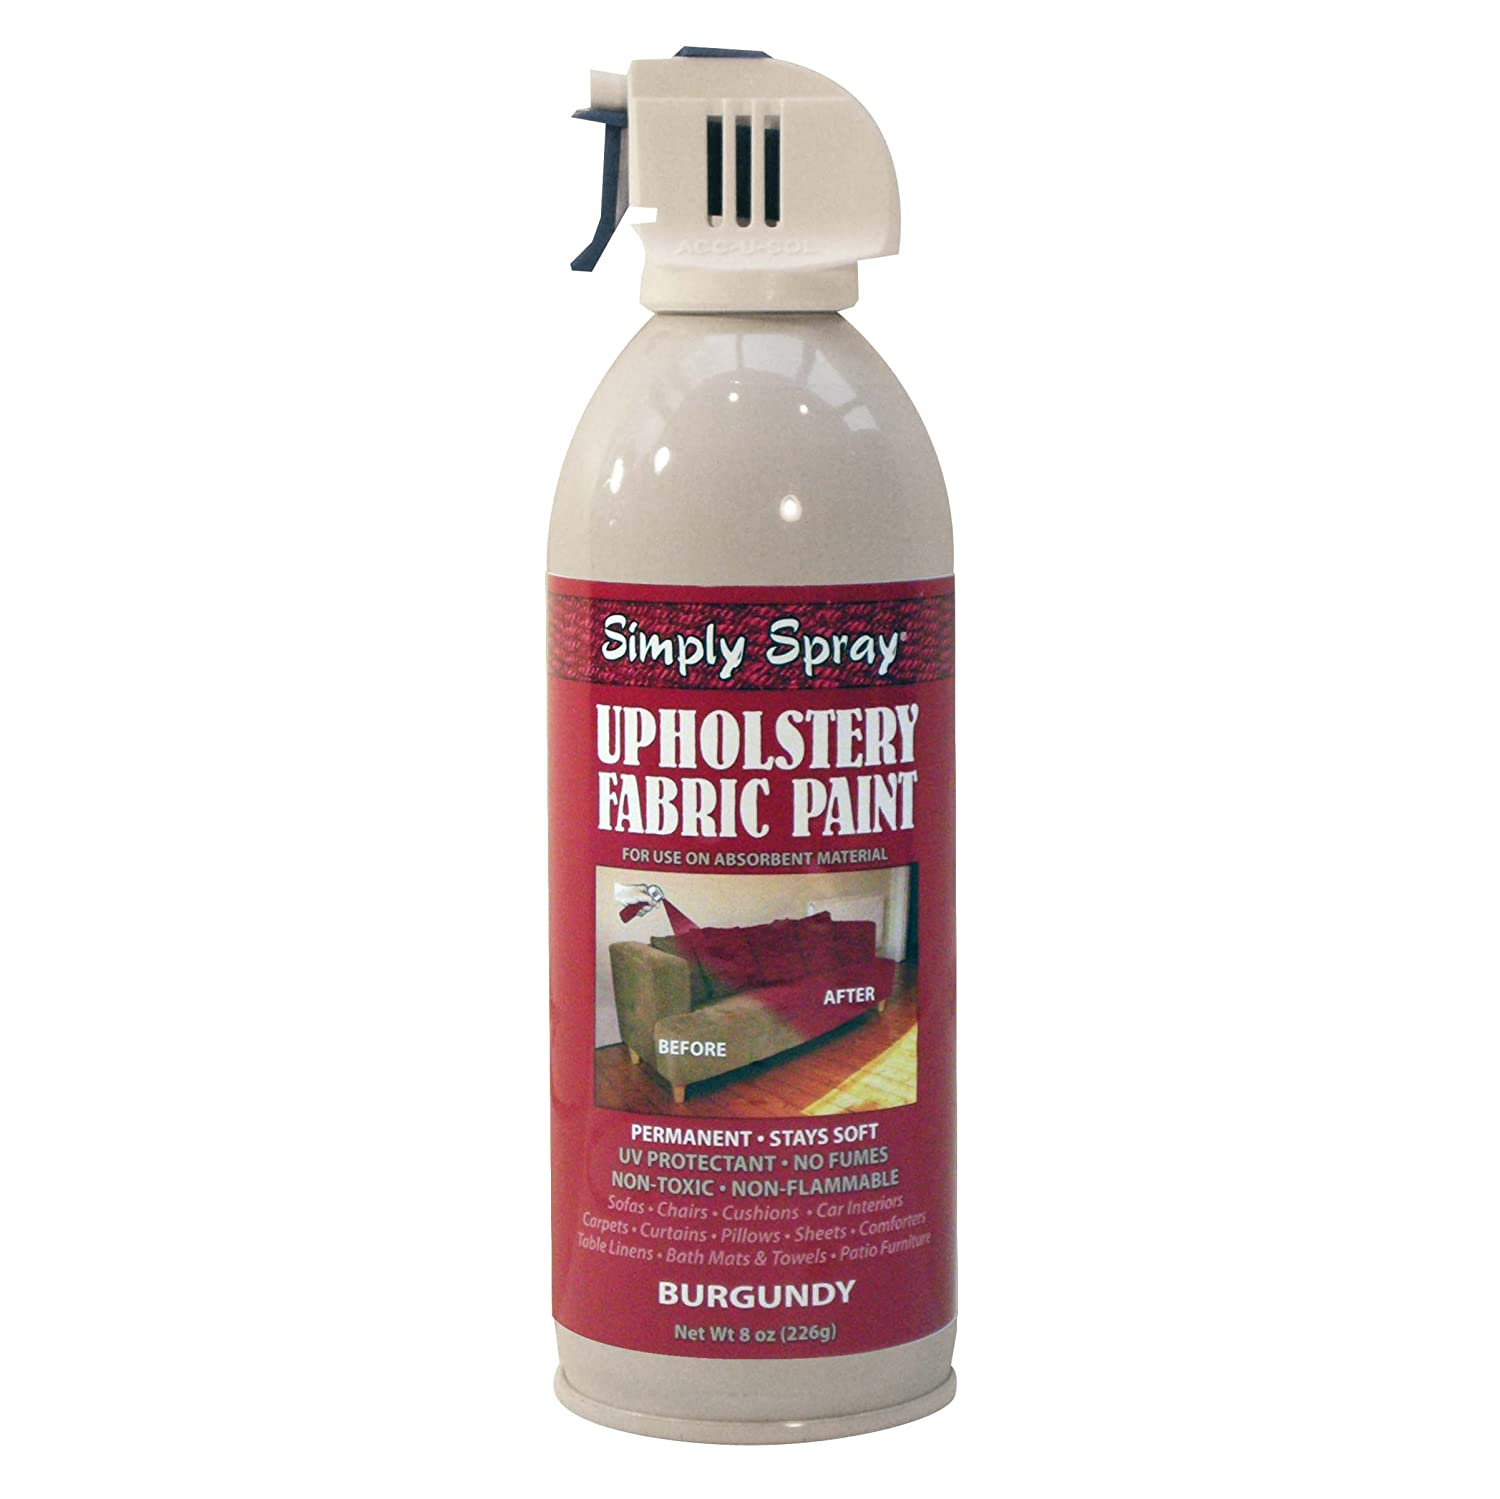 simply spray upholstery fabric paint nontoxic aerosol paint for use on all absorbent materials various colours available burgundy amazoncouk